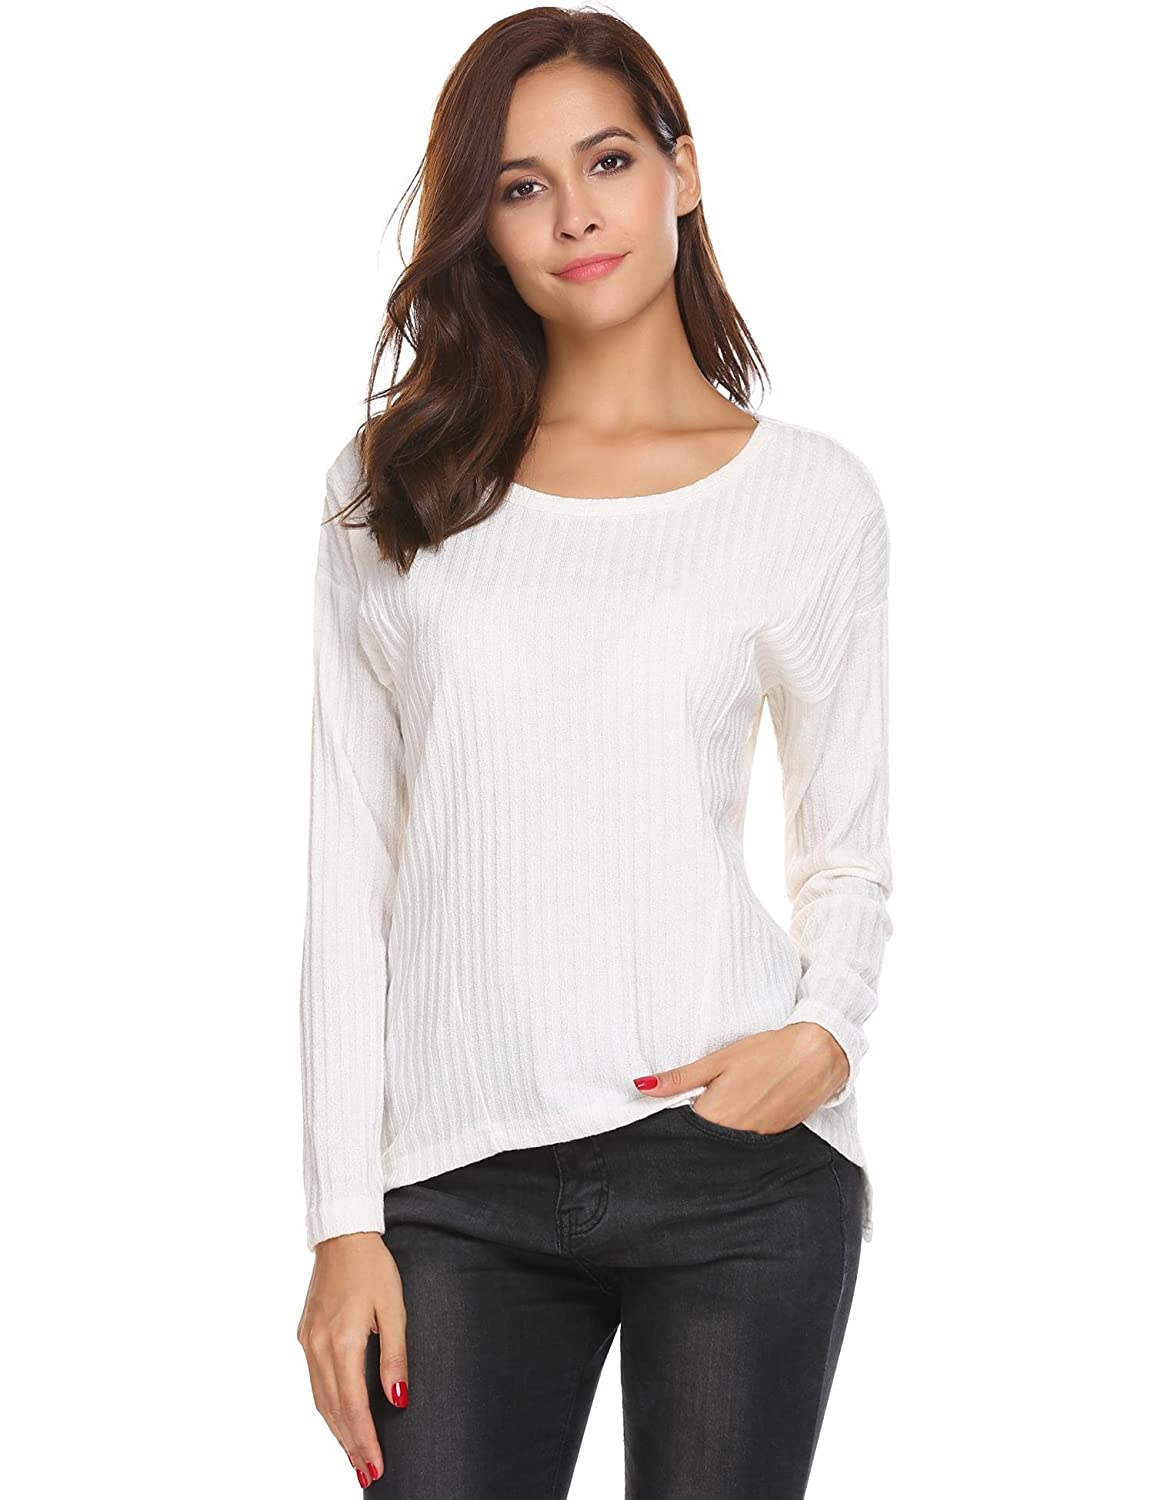 1a022ef64 Top10: Zeagoo Women Plain Crewneck Pullover Ribbed Sweater Knitted Long  Sleeve Jumper